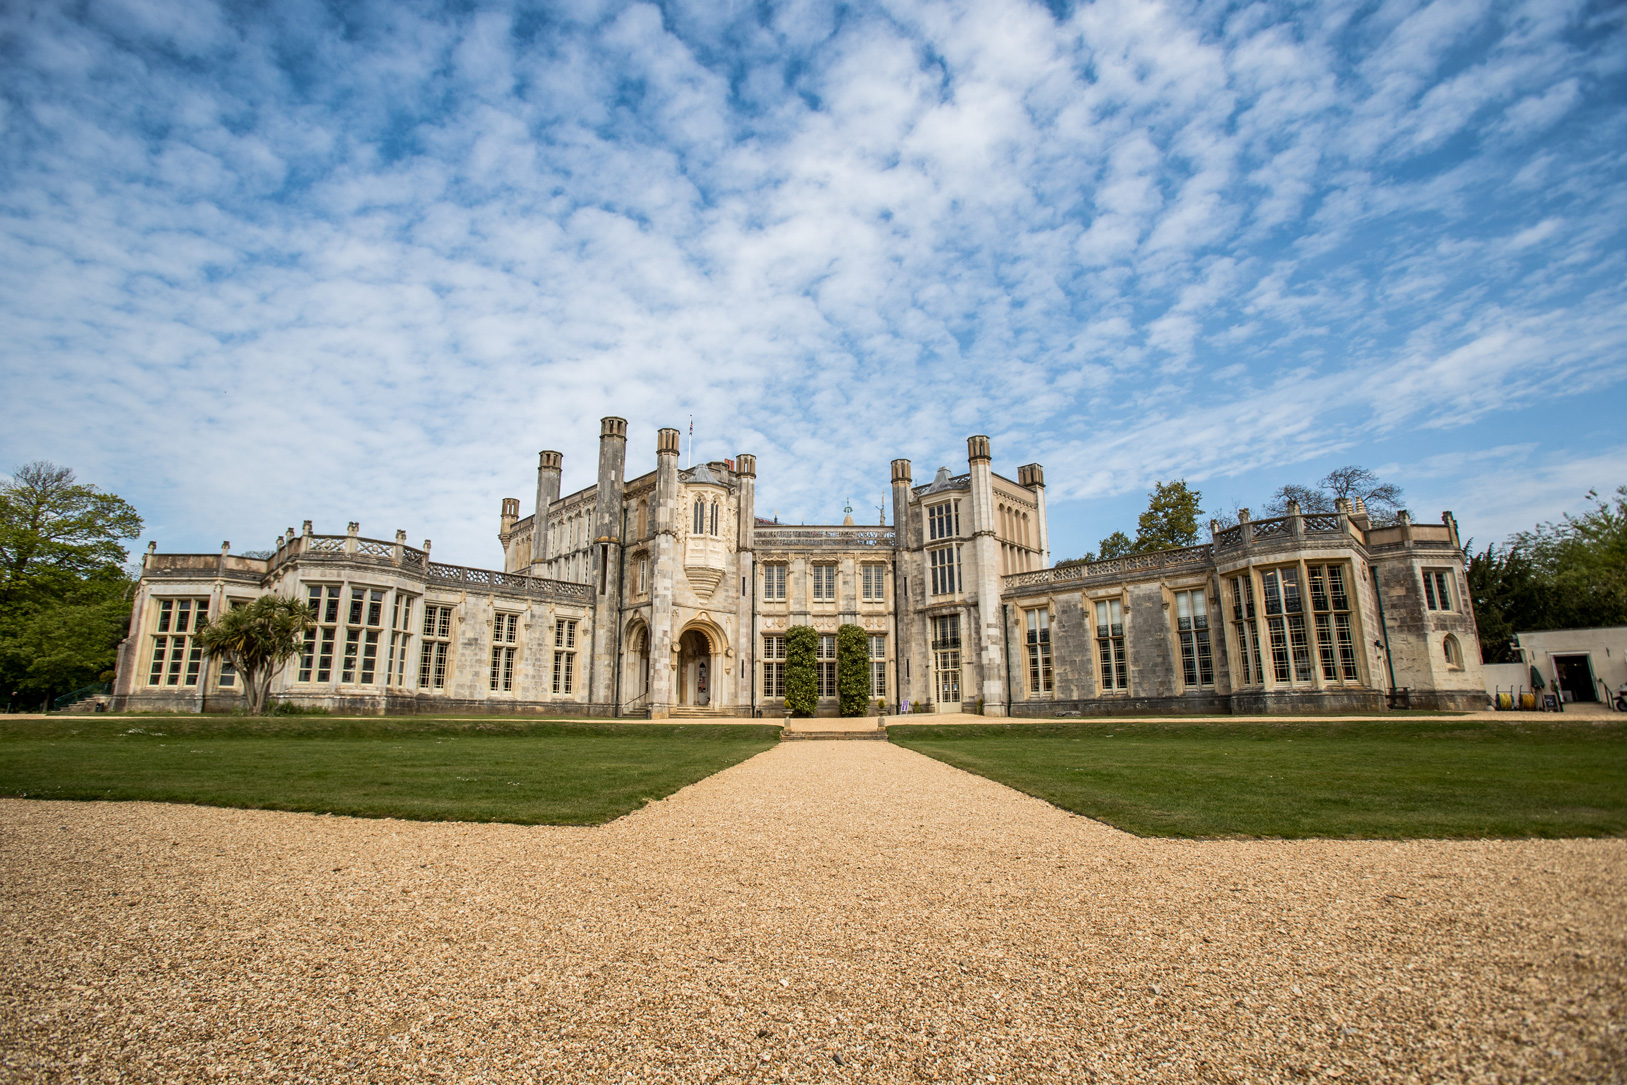 Beautiful blue skies with mottled cloud above Highcliffe Castle with lush green lawns and long gravel paths